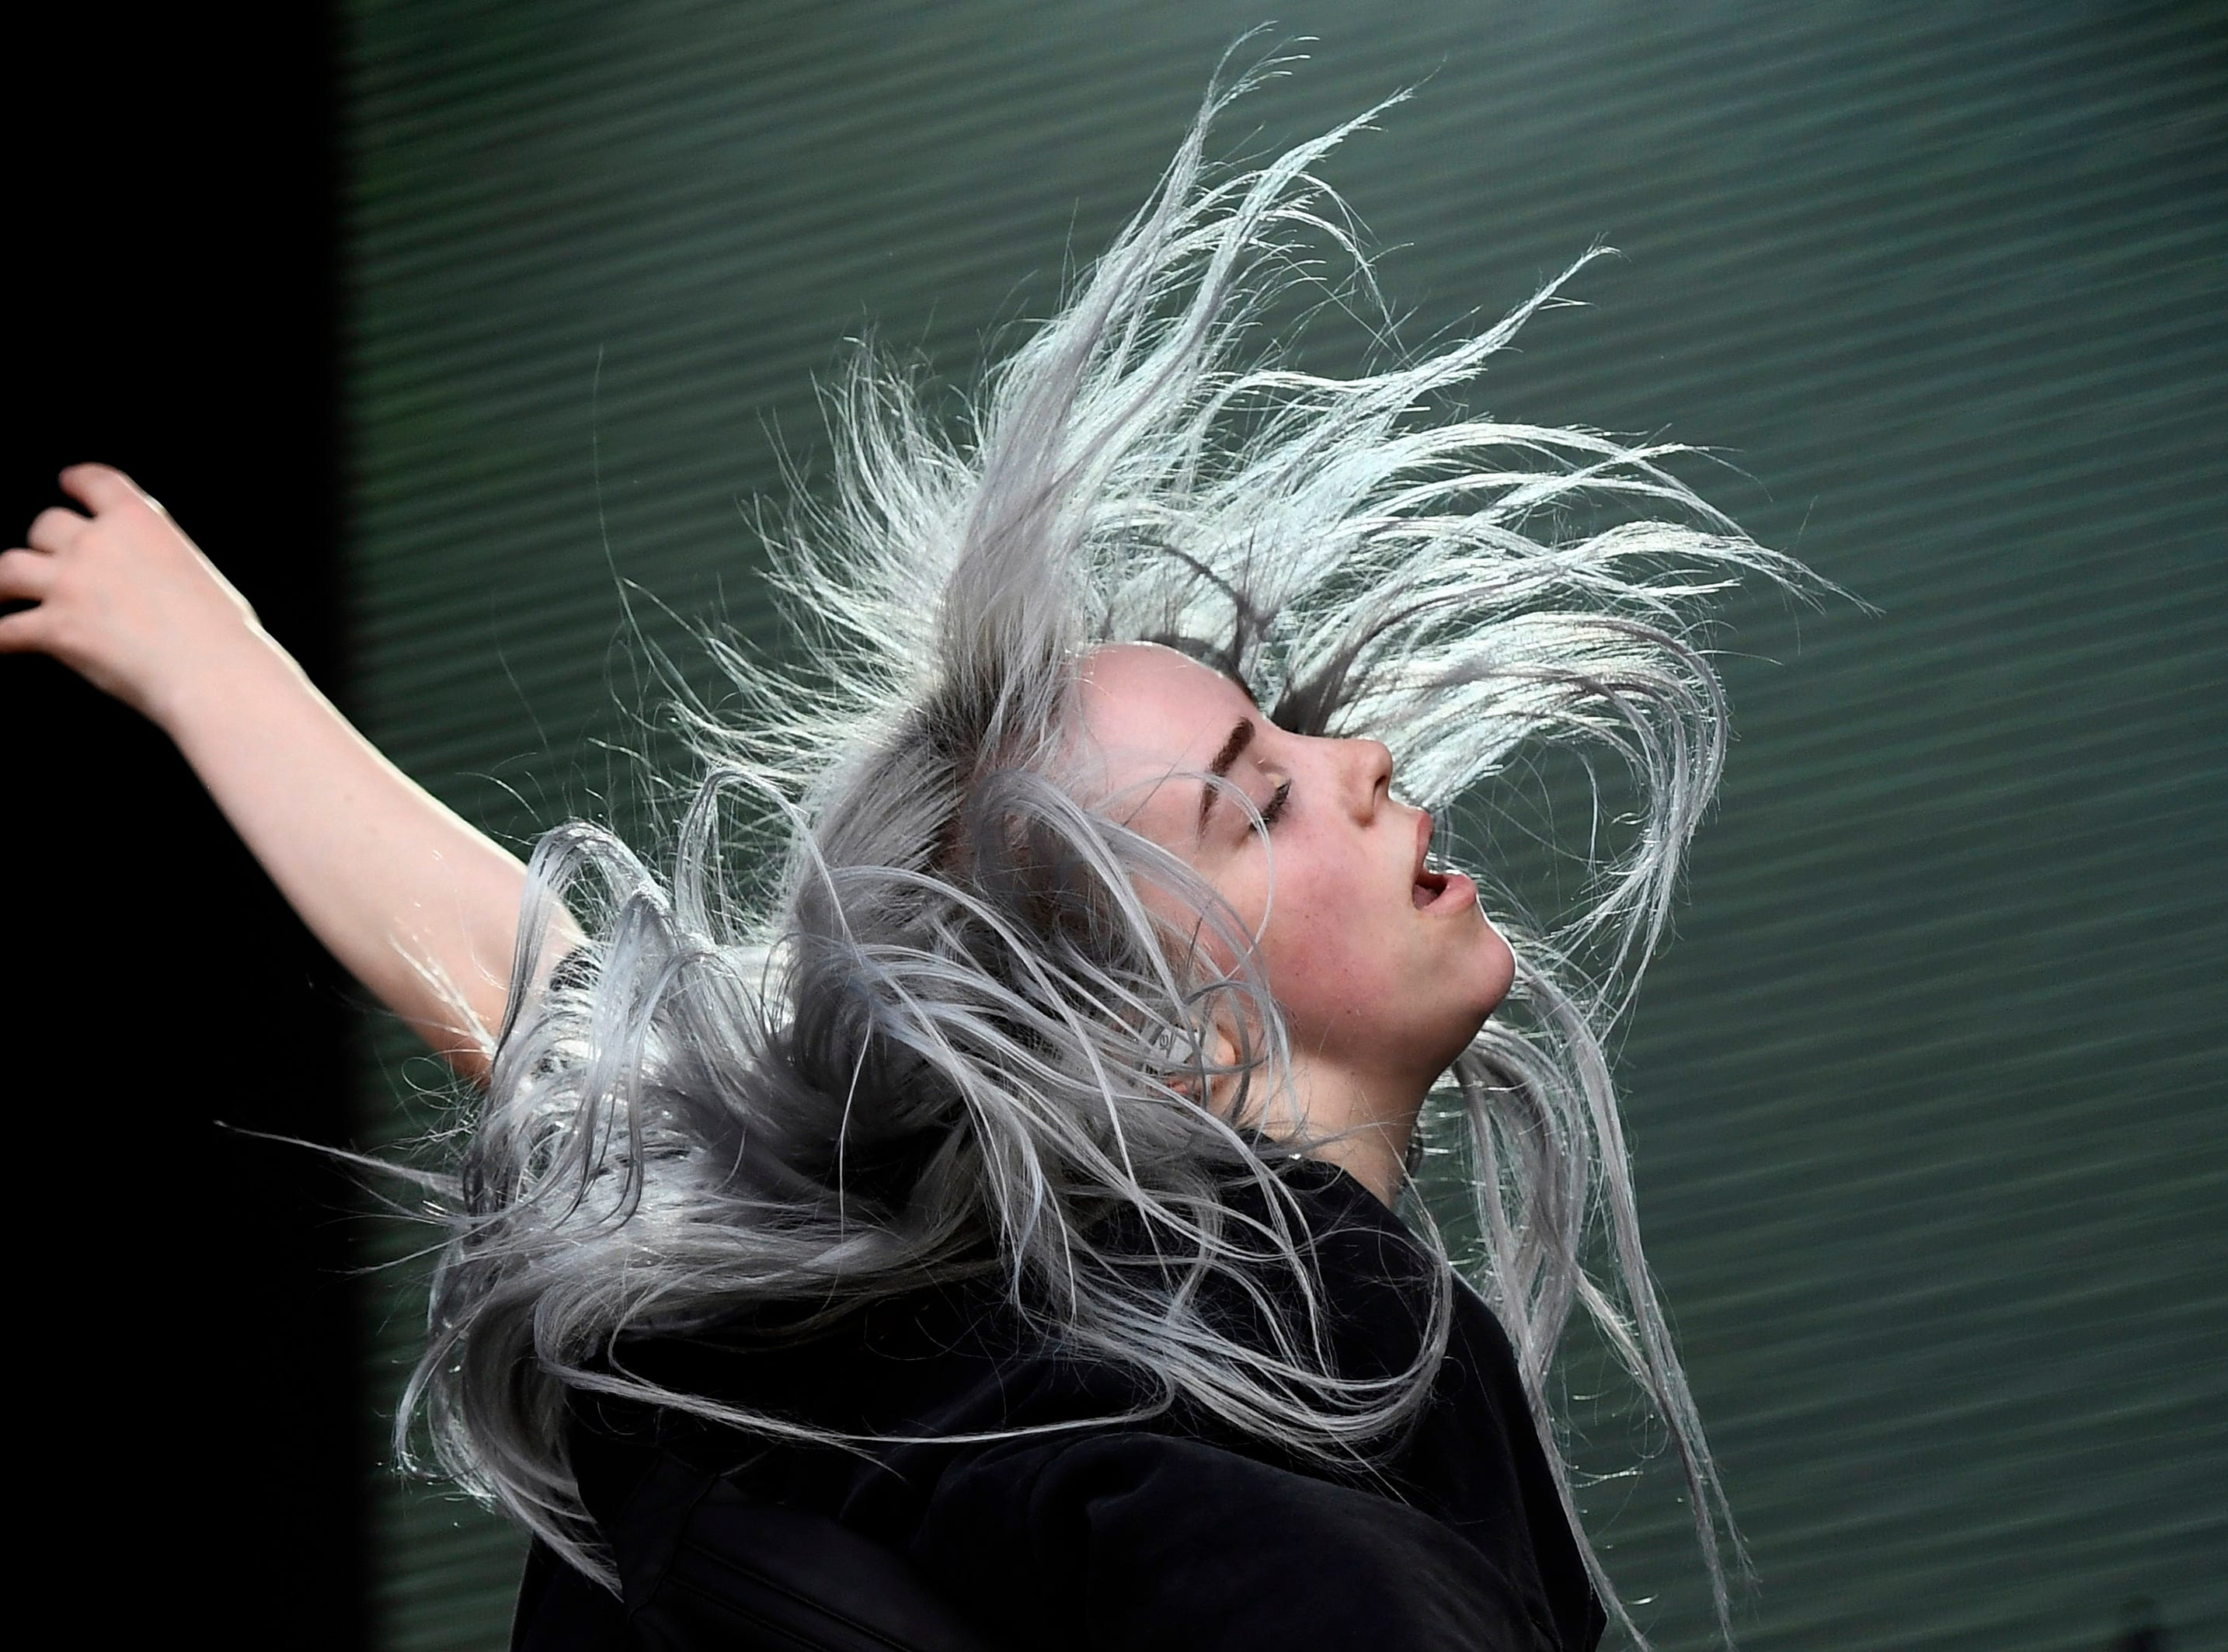 June 9, 2018; Manchester, TN, USA; Billie Eilish performs during the Bonnaroo Music and Arts Festival. Mandatory Credit: Brianna Paciorka/The Tennessean via USA TODAY NETWORK ORIG FILE ID:  20180609_ajw_usa_211.jpg